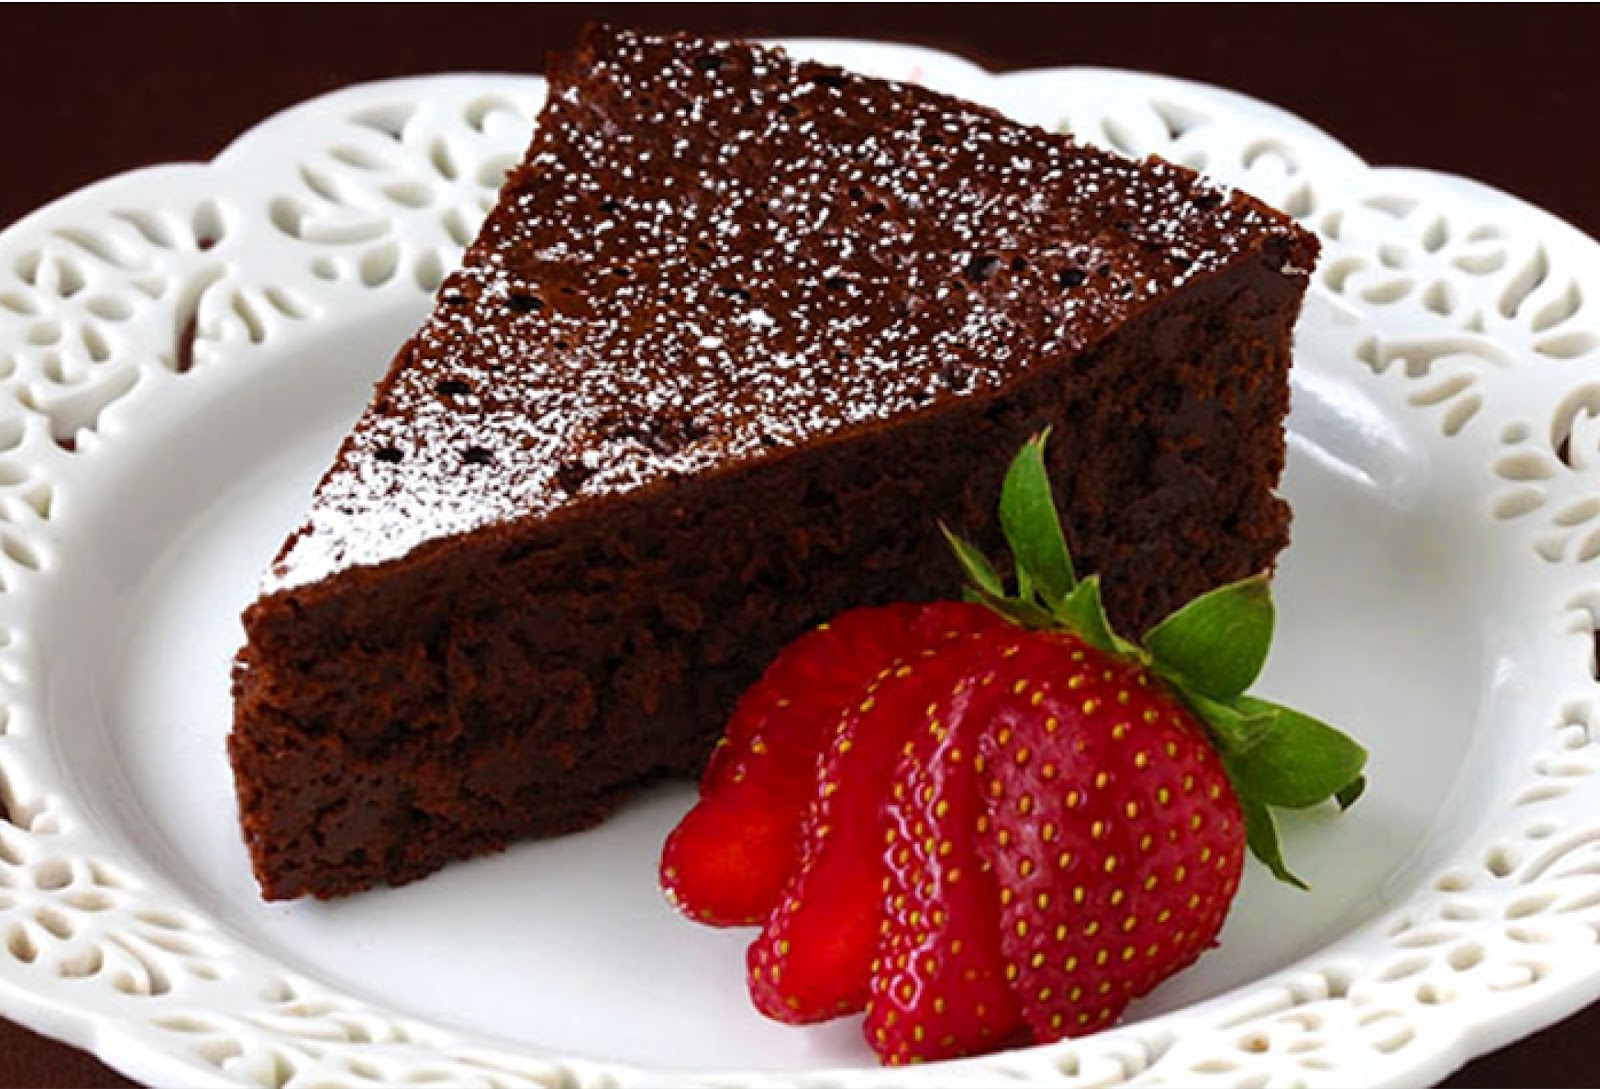 Download image Flourless Chocolate Cake PC, Android, iPhone and iPad ...